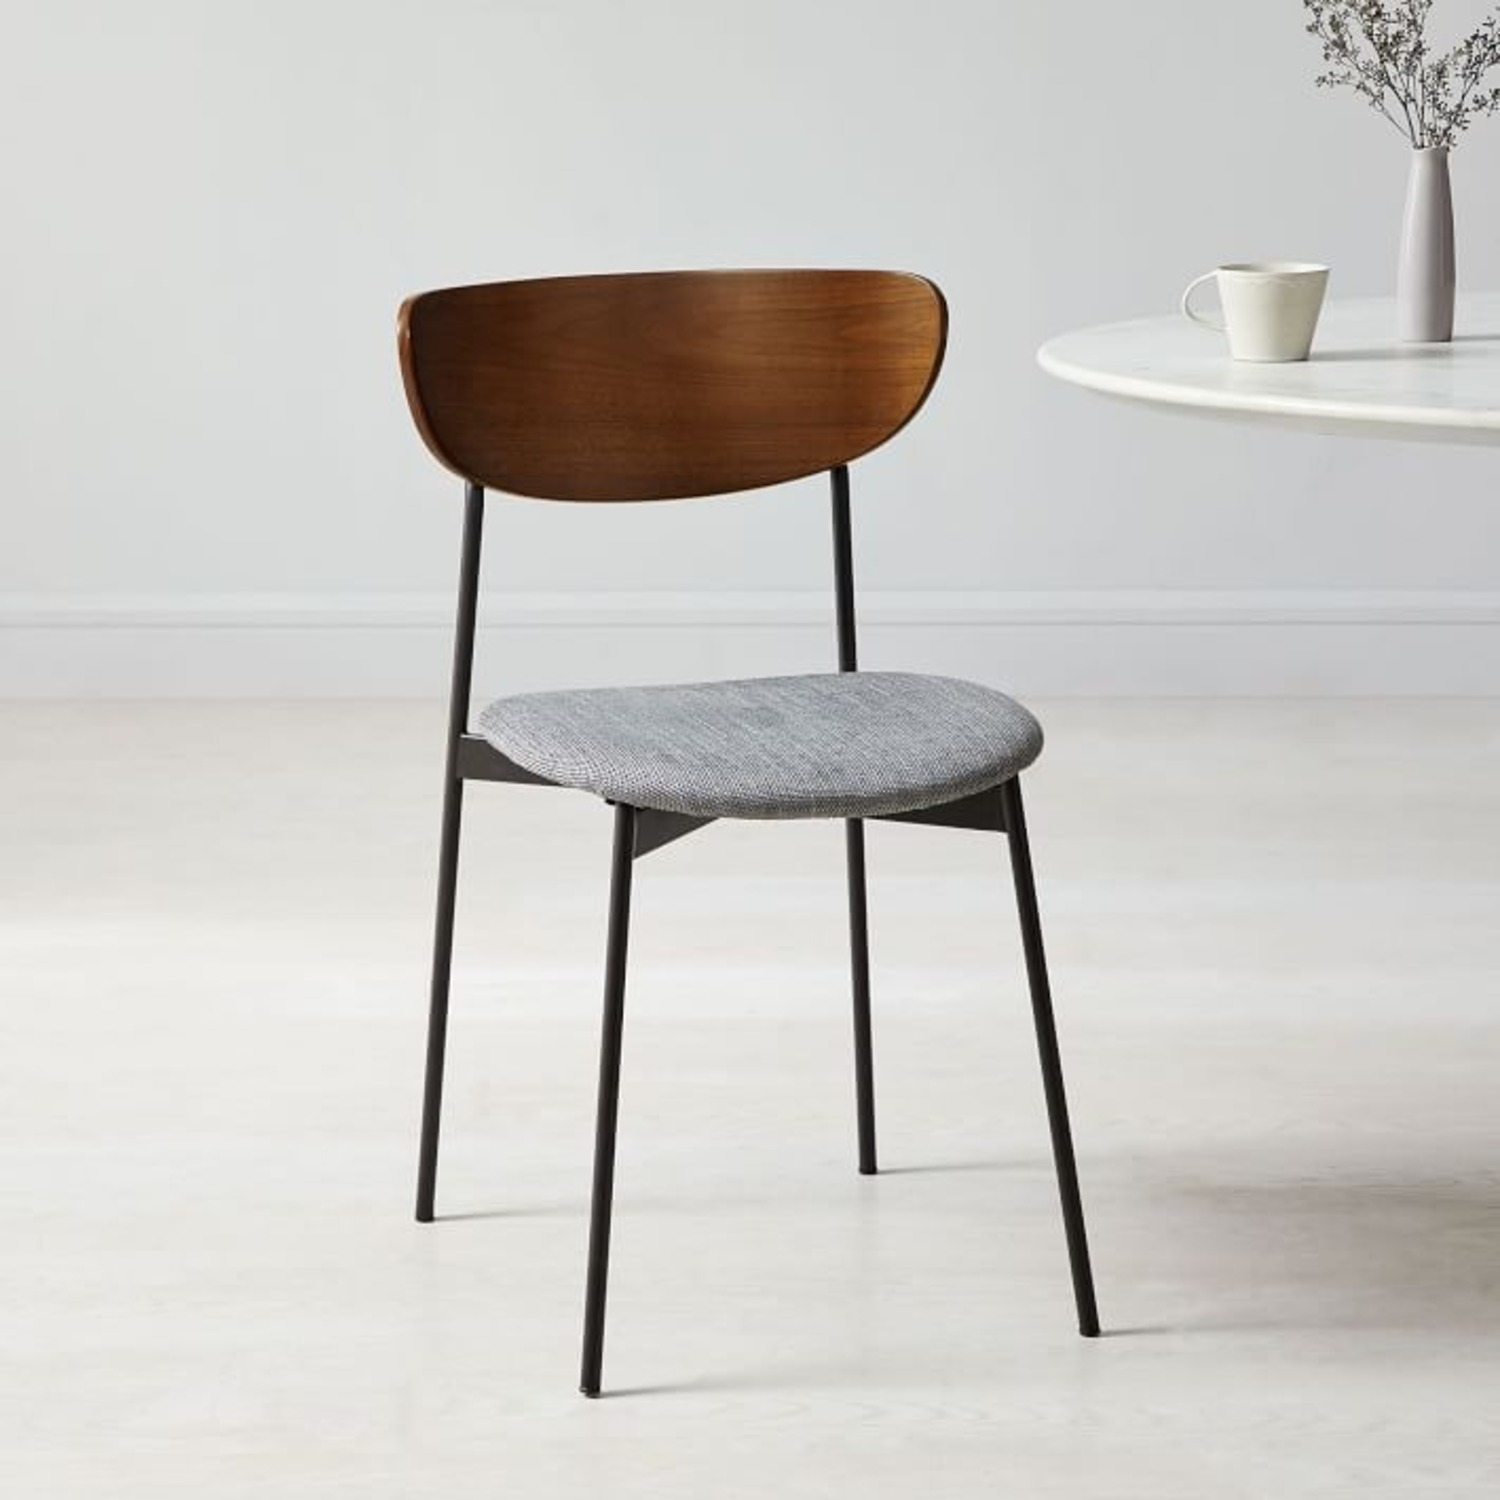 West Elm Mid Century Modern Petal Dining Chair - image-1